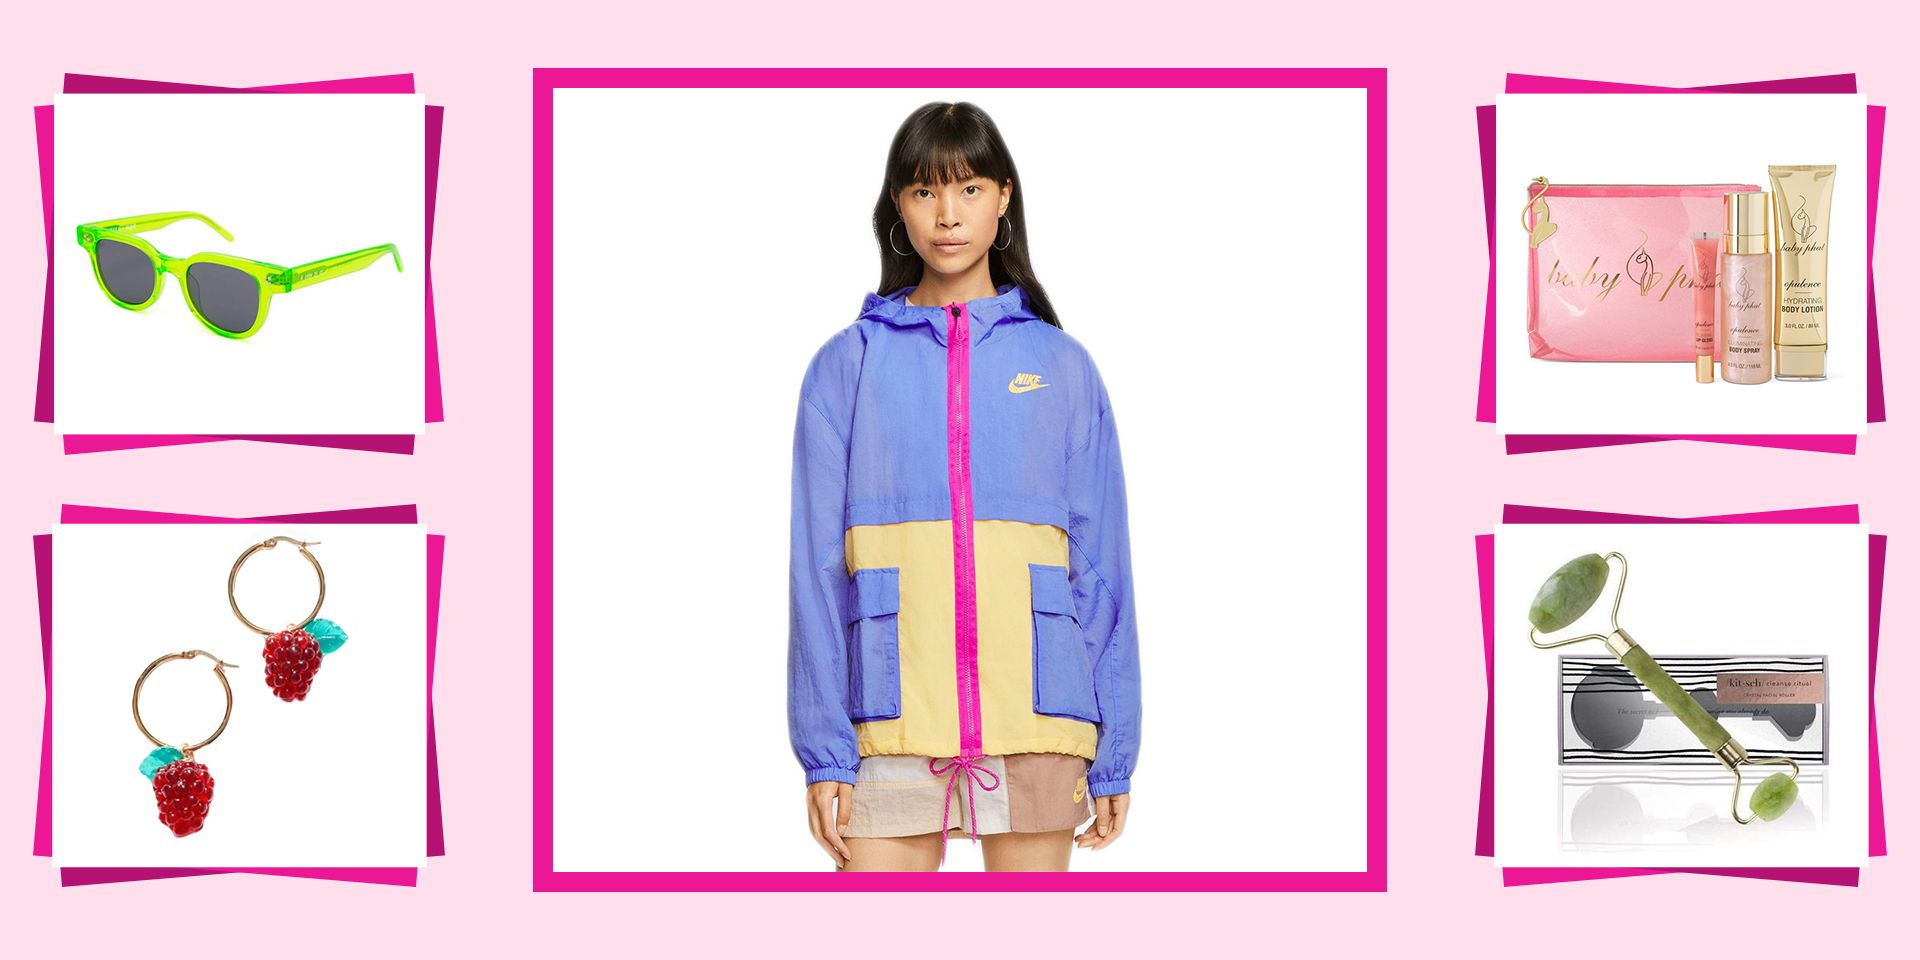 Top Christmas Gifts For Preteens 2021 30 Best Gifts For Tween Girls 2021 Cute Gift Ideas For Tweens